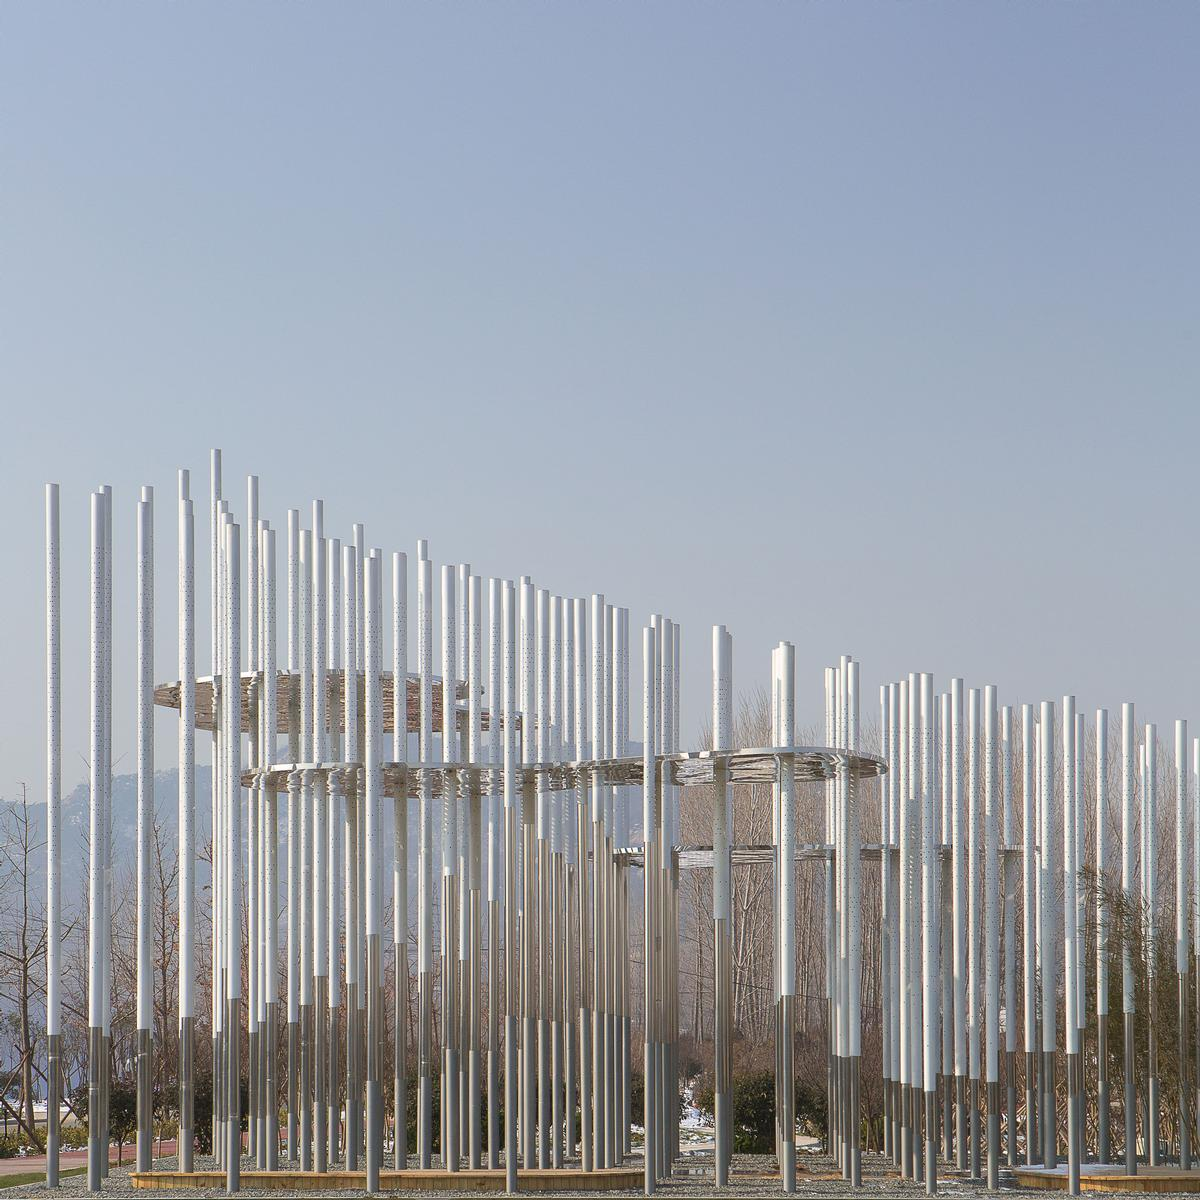 The installation comprises 200 steel poles / Aurelien Chen